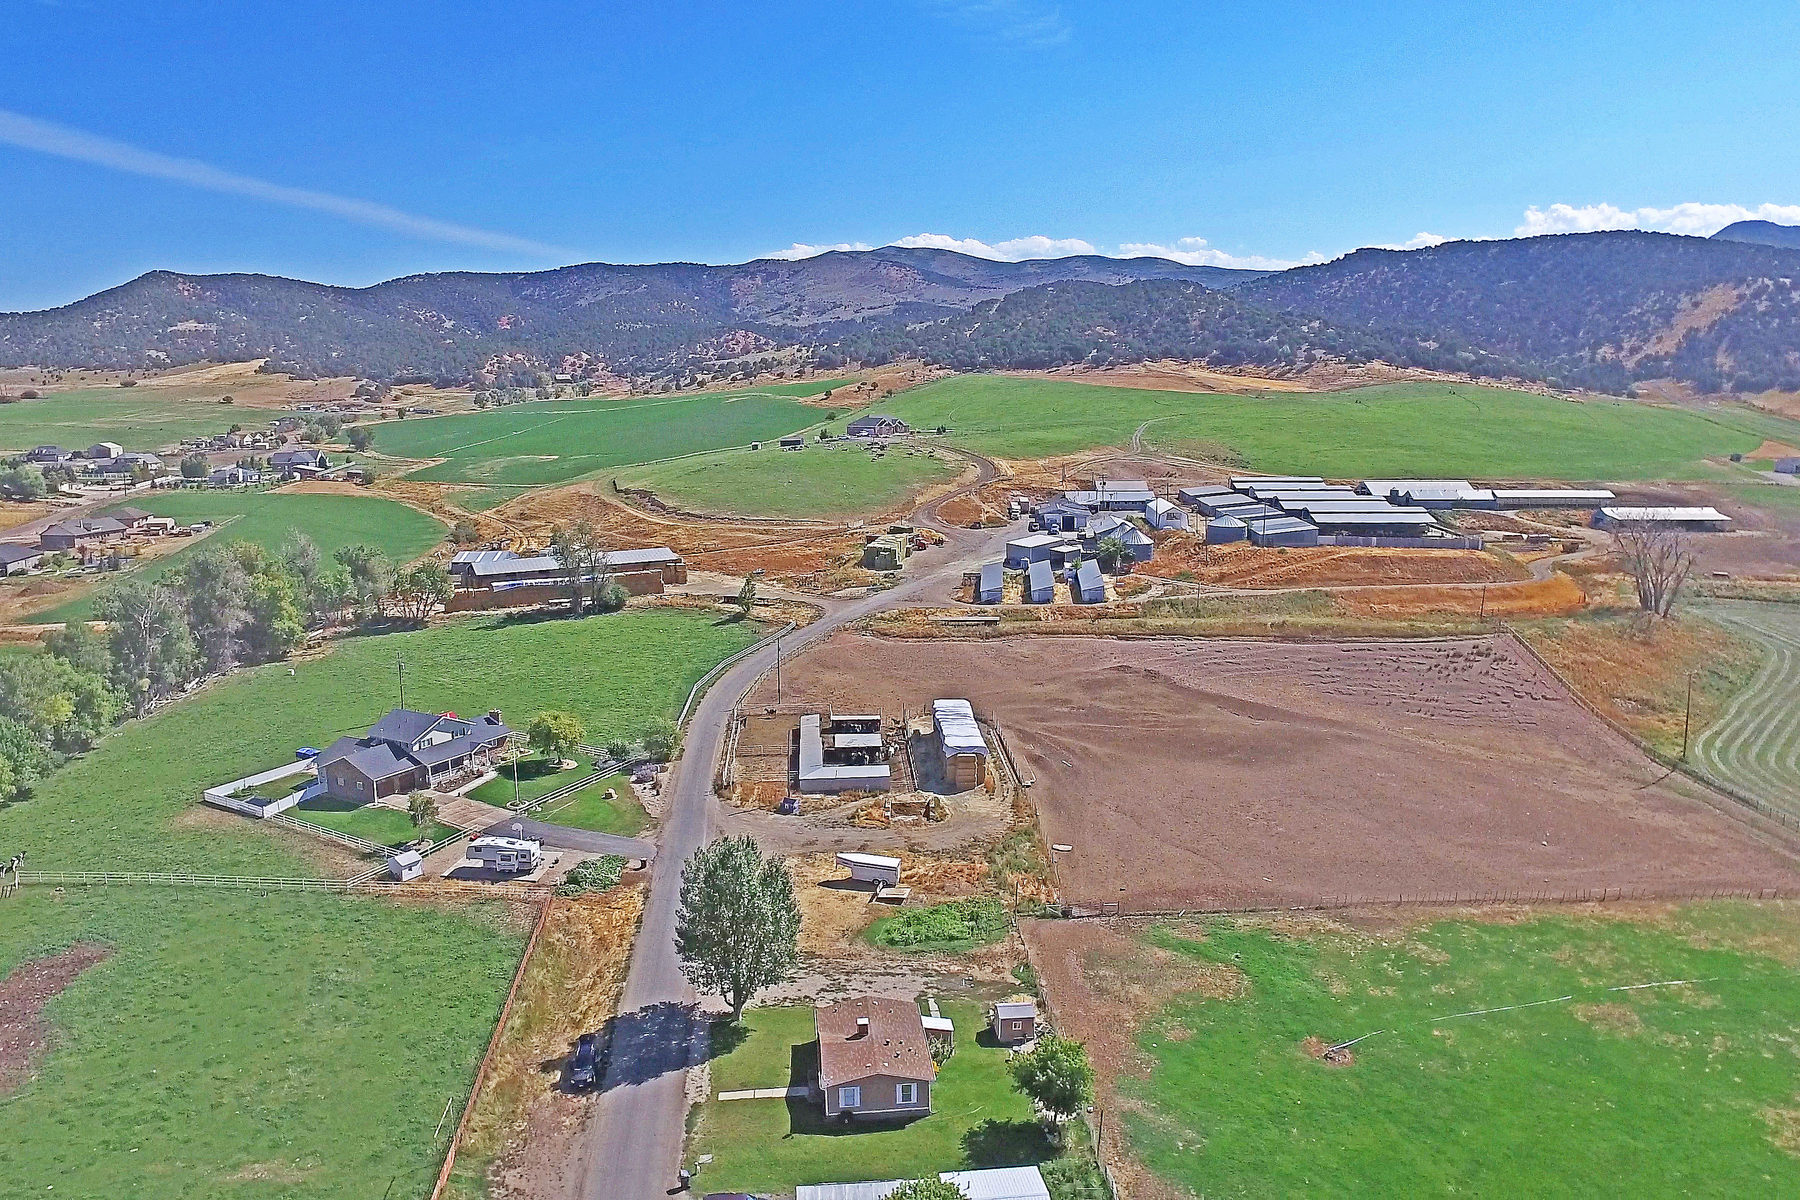 Farm / Ranch / Plantation for Sale at 295 Acres with Homes, Barns & Water Rights 295 Acres Coalville UT Coalville, Utah, 84017 United States